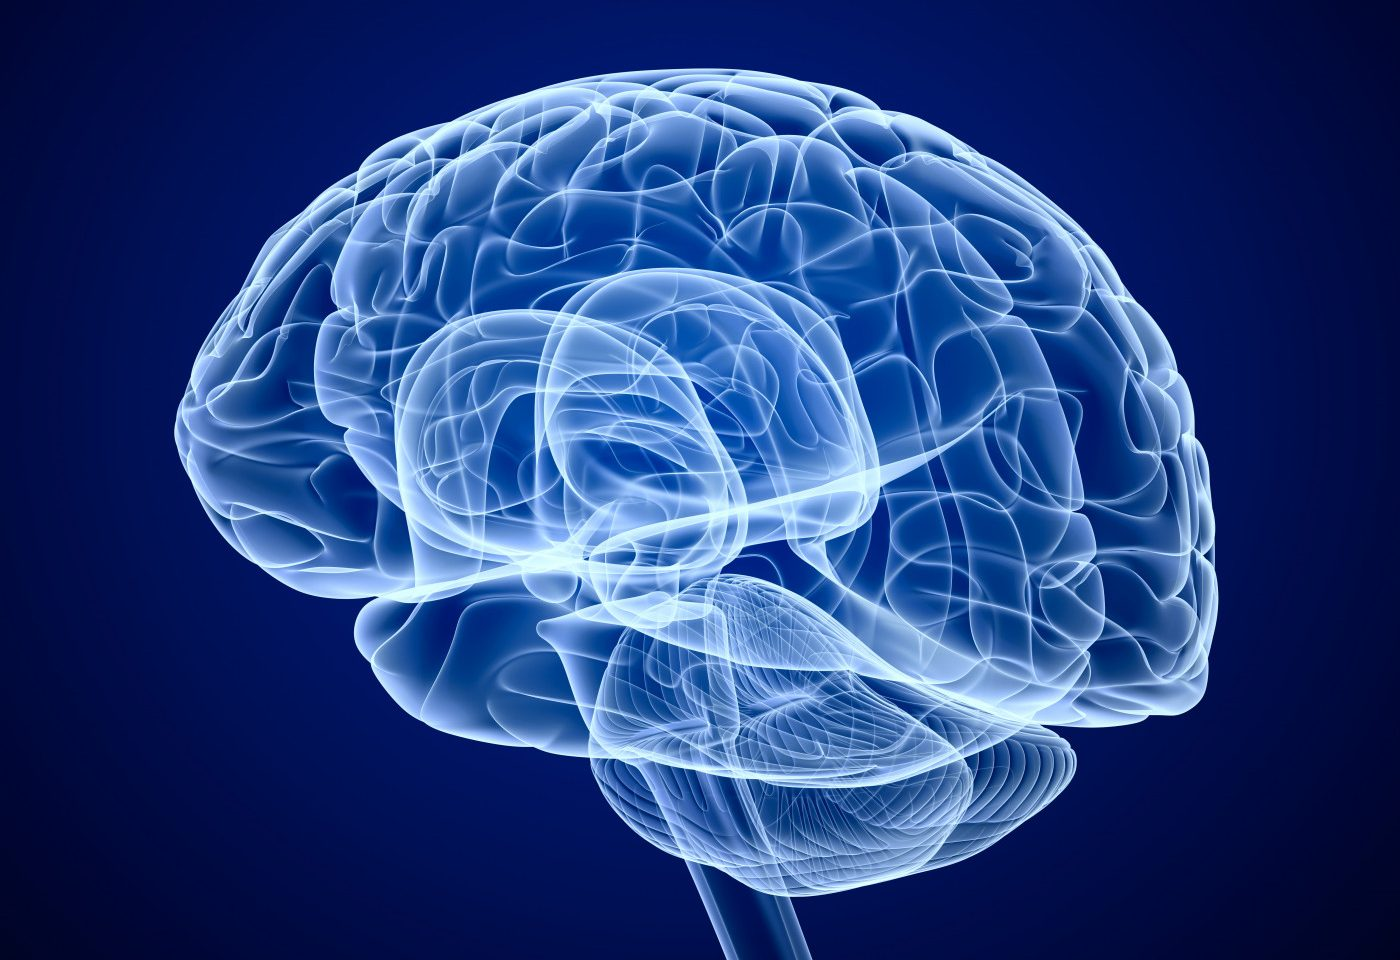 Brain Imaging Studies Seek Signs Of >> Myelocortical Ms New Subtype Marked By Nerve Cell But Not